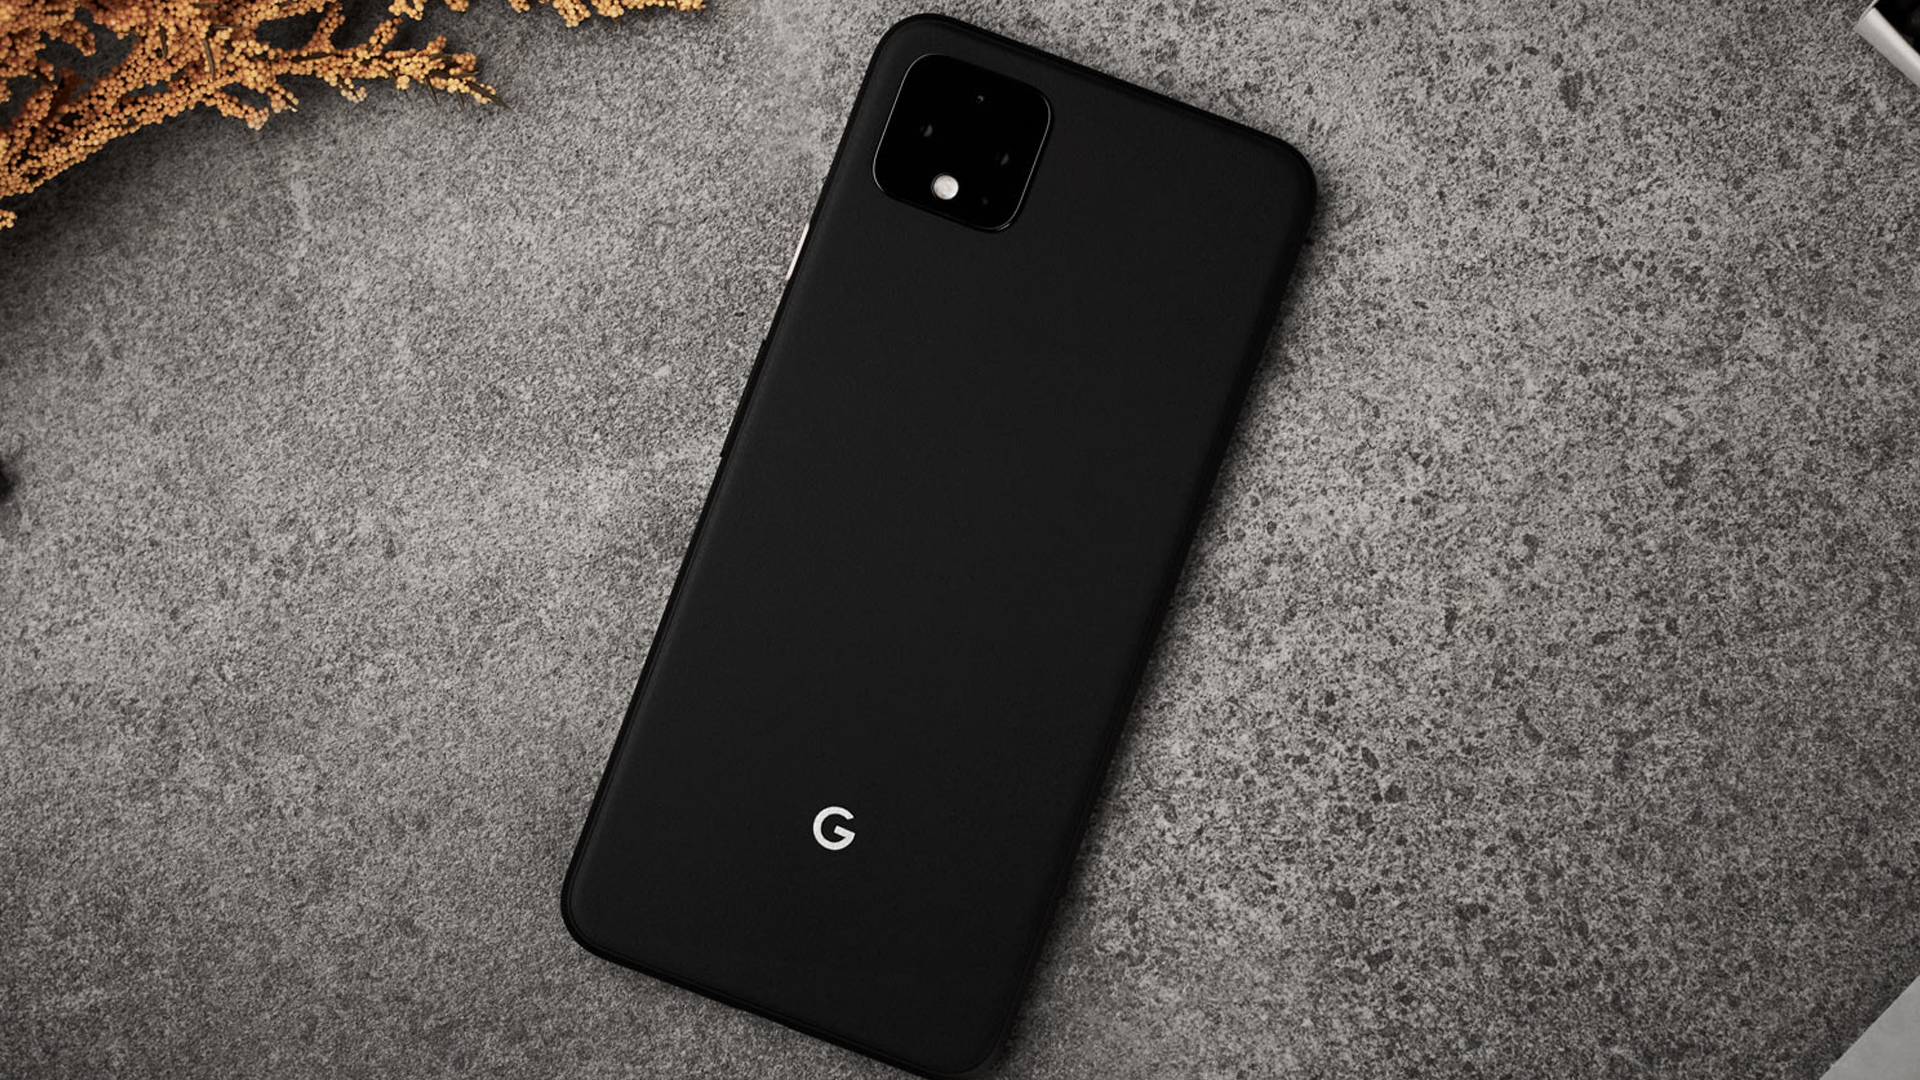 A Pixel 4 in a dbrand case.